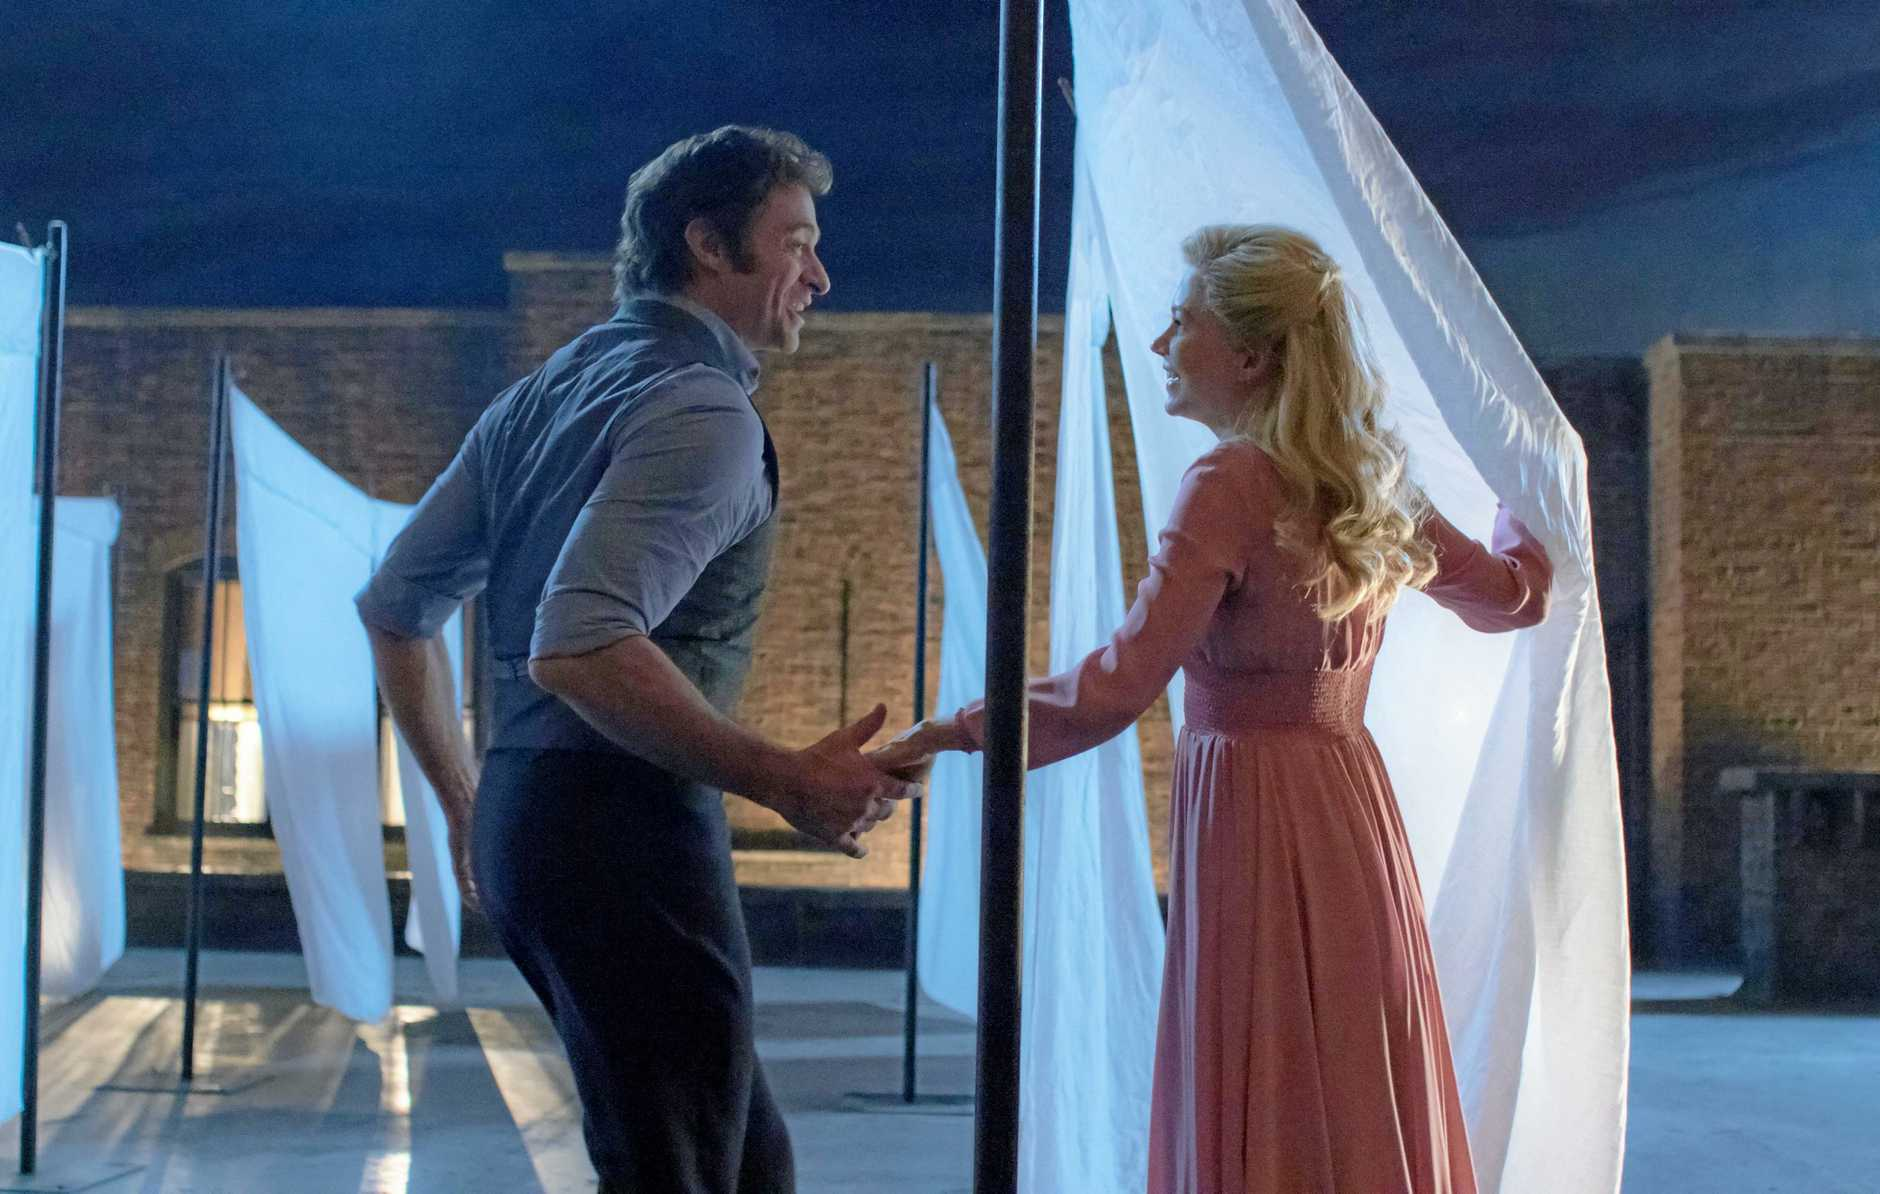 MUSICAL: Hugh Jackman and Michelle Williams in a scene from the movie  The Greatest Showman .